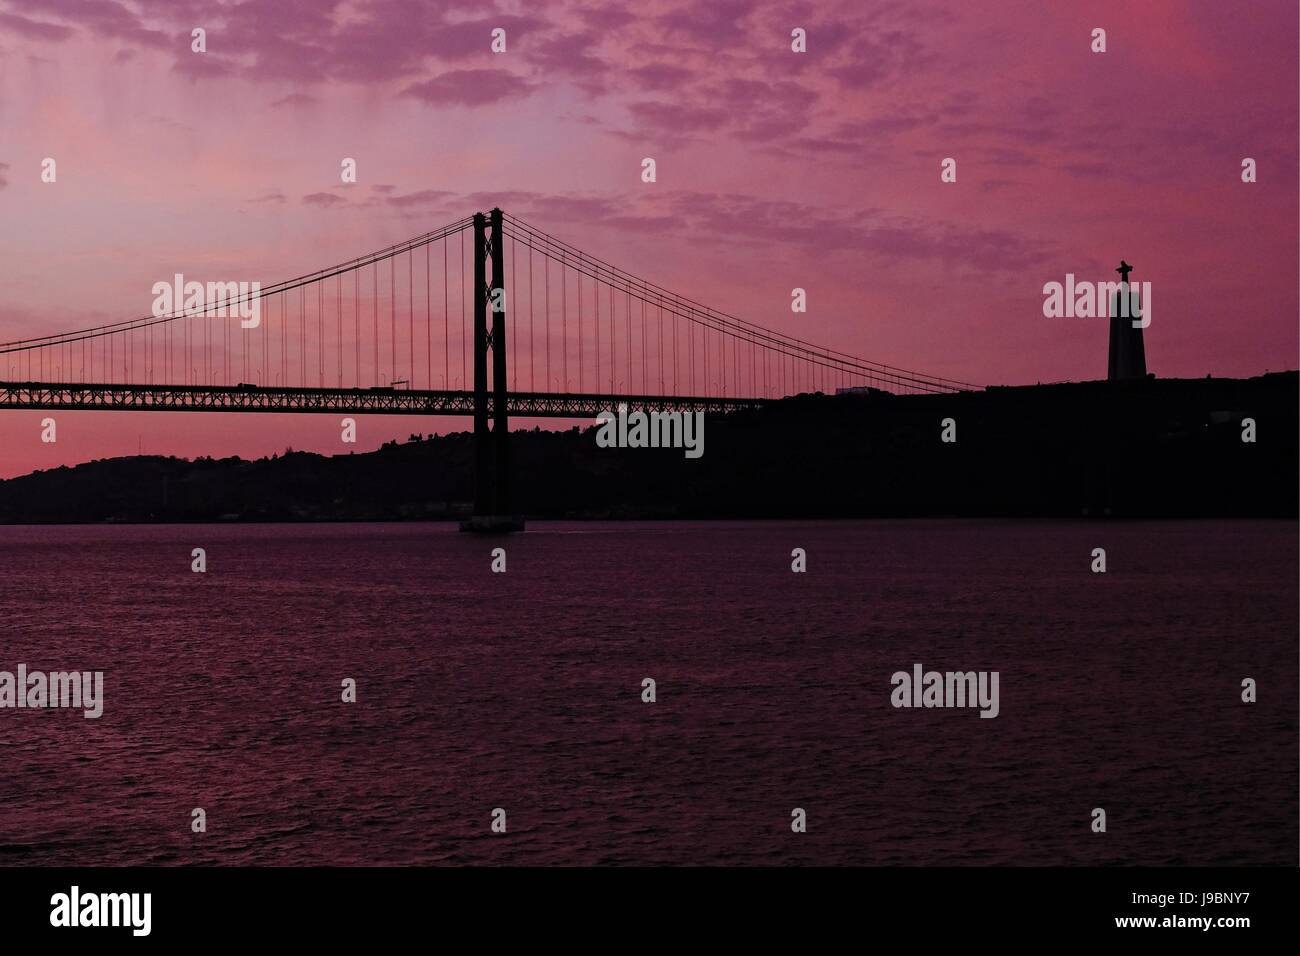 Lisbon - 25 de Abril Bridge and The Sanctuary of Christ the King Monument Stock Photo